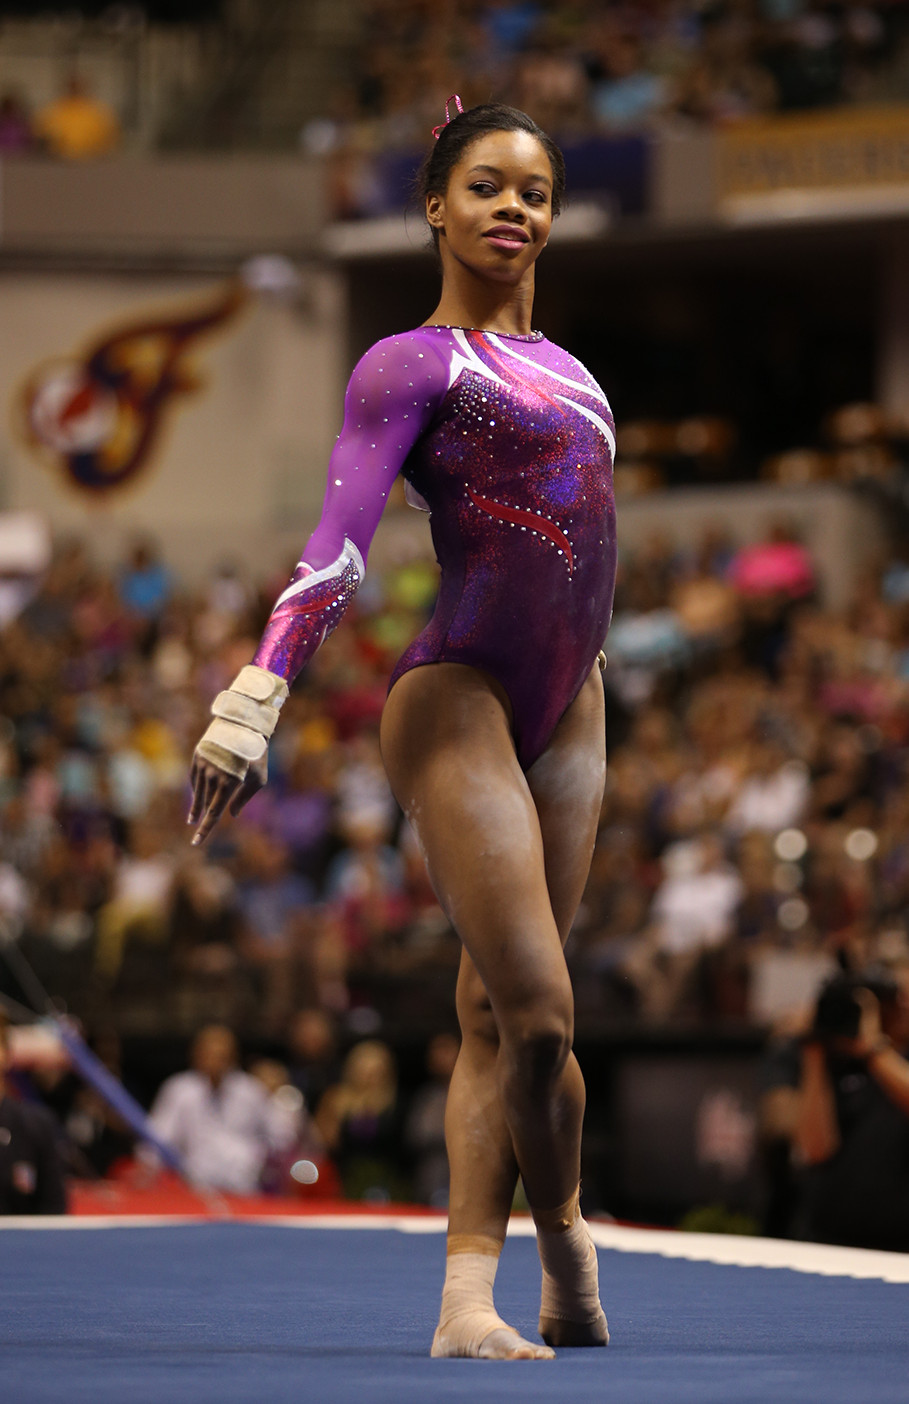 Gabby Douglas - First Black gymnast to be the individual all-around champion, and the first American gymnast to win gold in individual all-around and team competitions at a single Olympic Games.